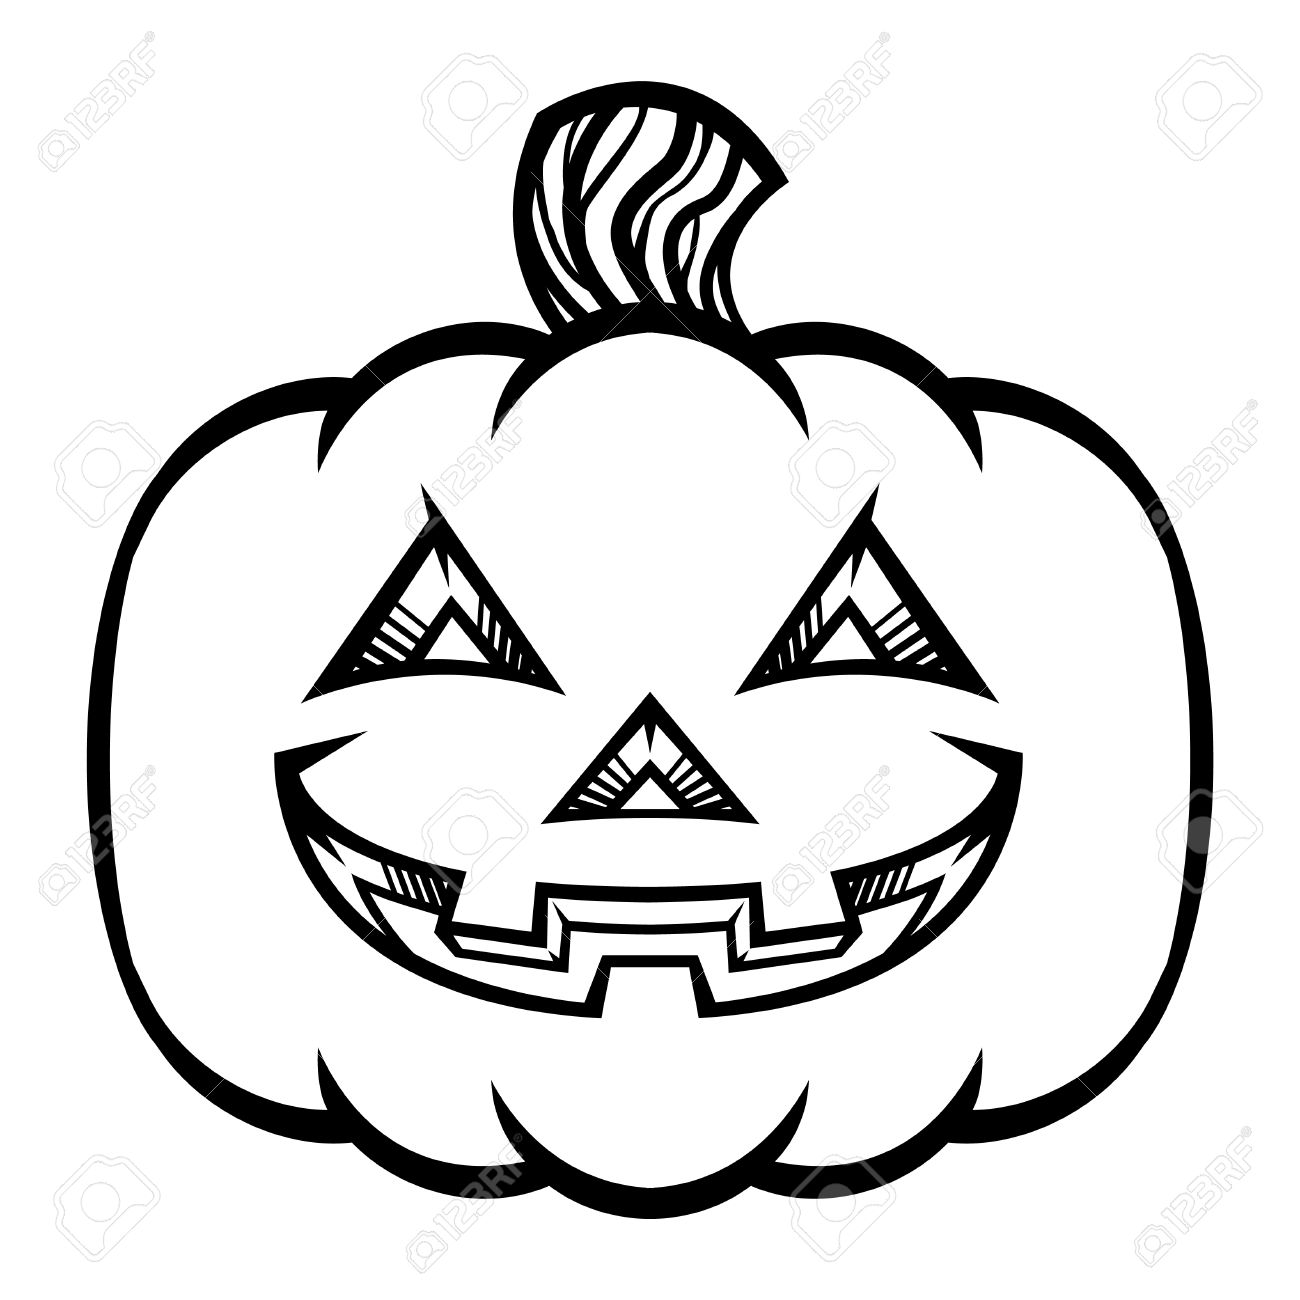 jack o lantern pumpkin vector icon royalty free cliparts vectors rh 123rf com Pumpkin Vector Black black and white vector pumpkin